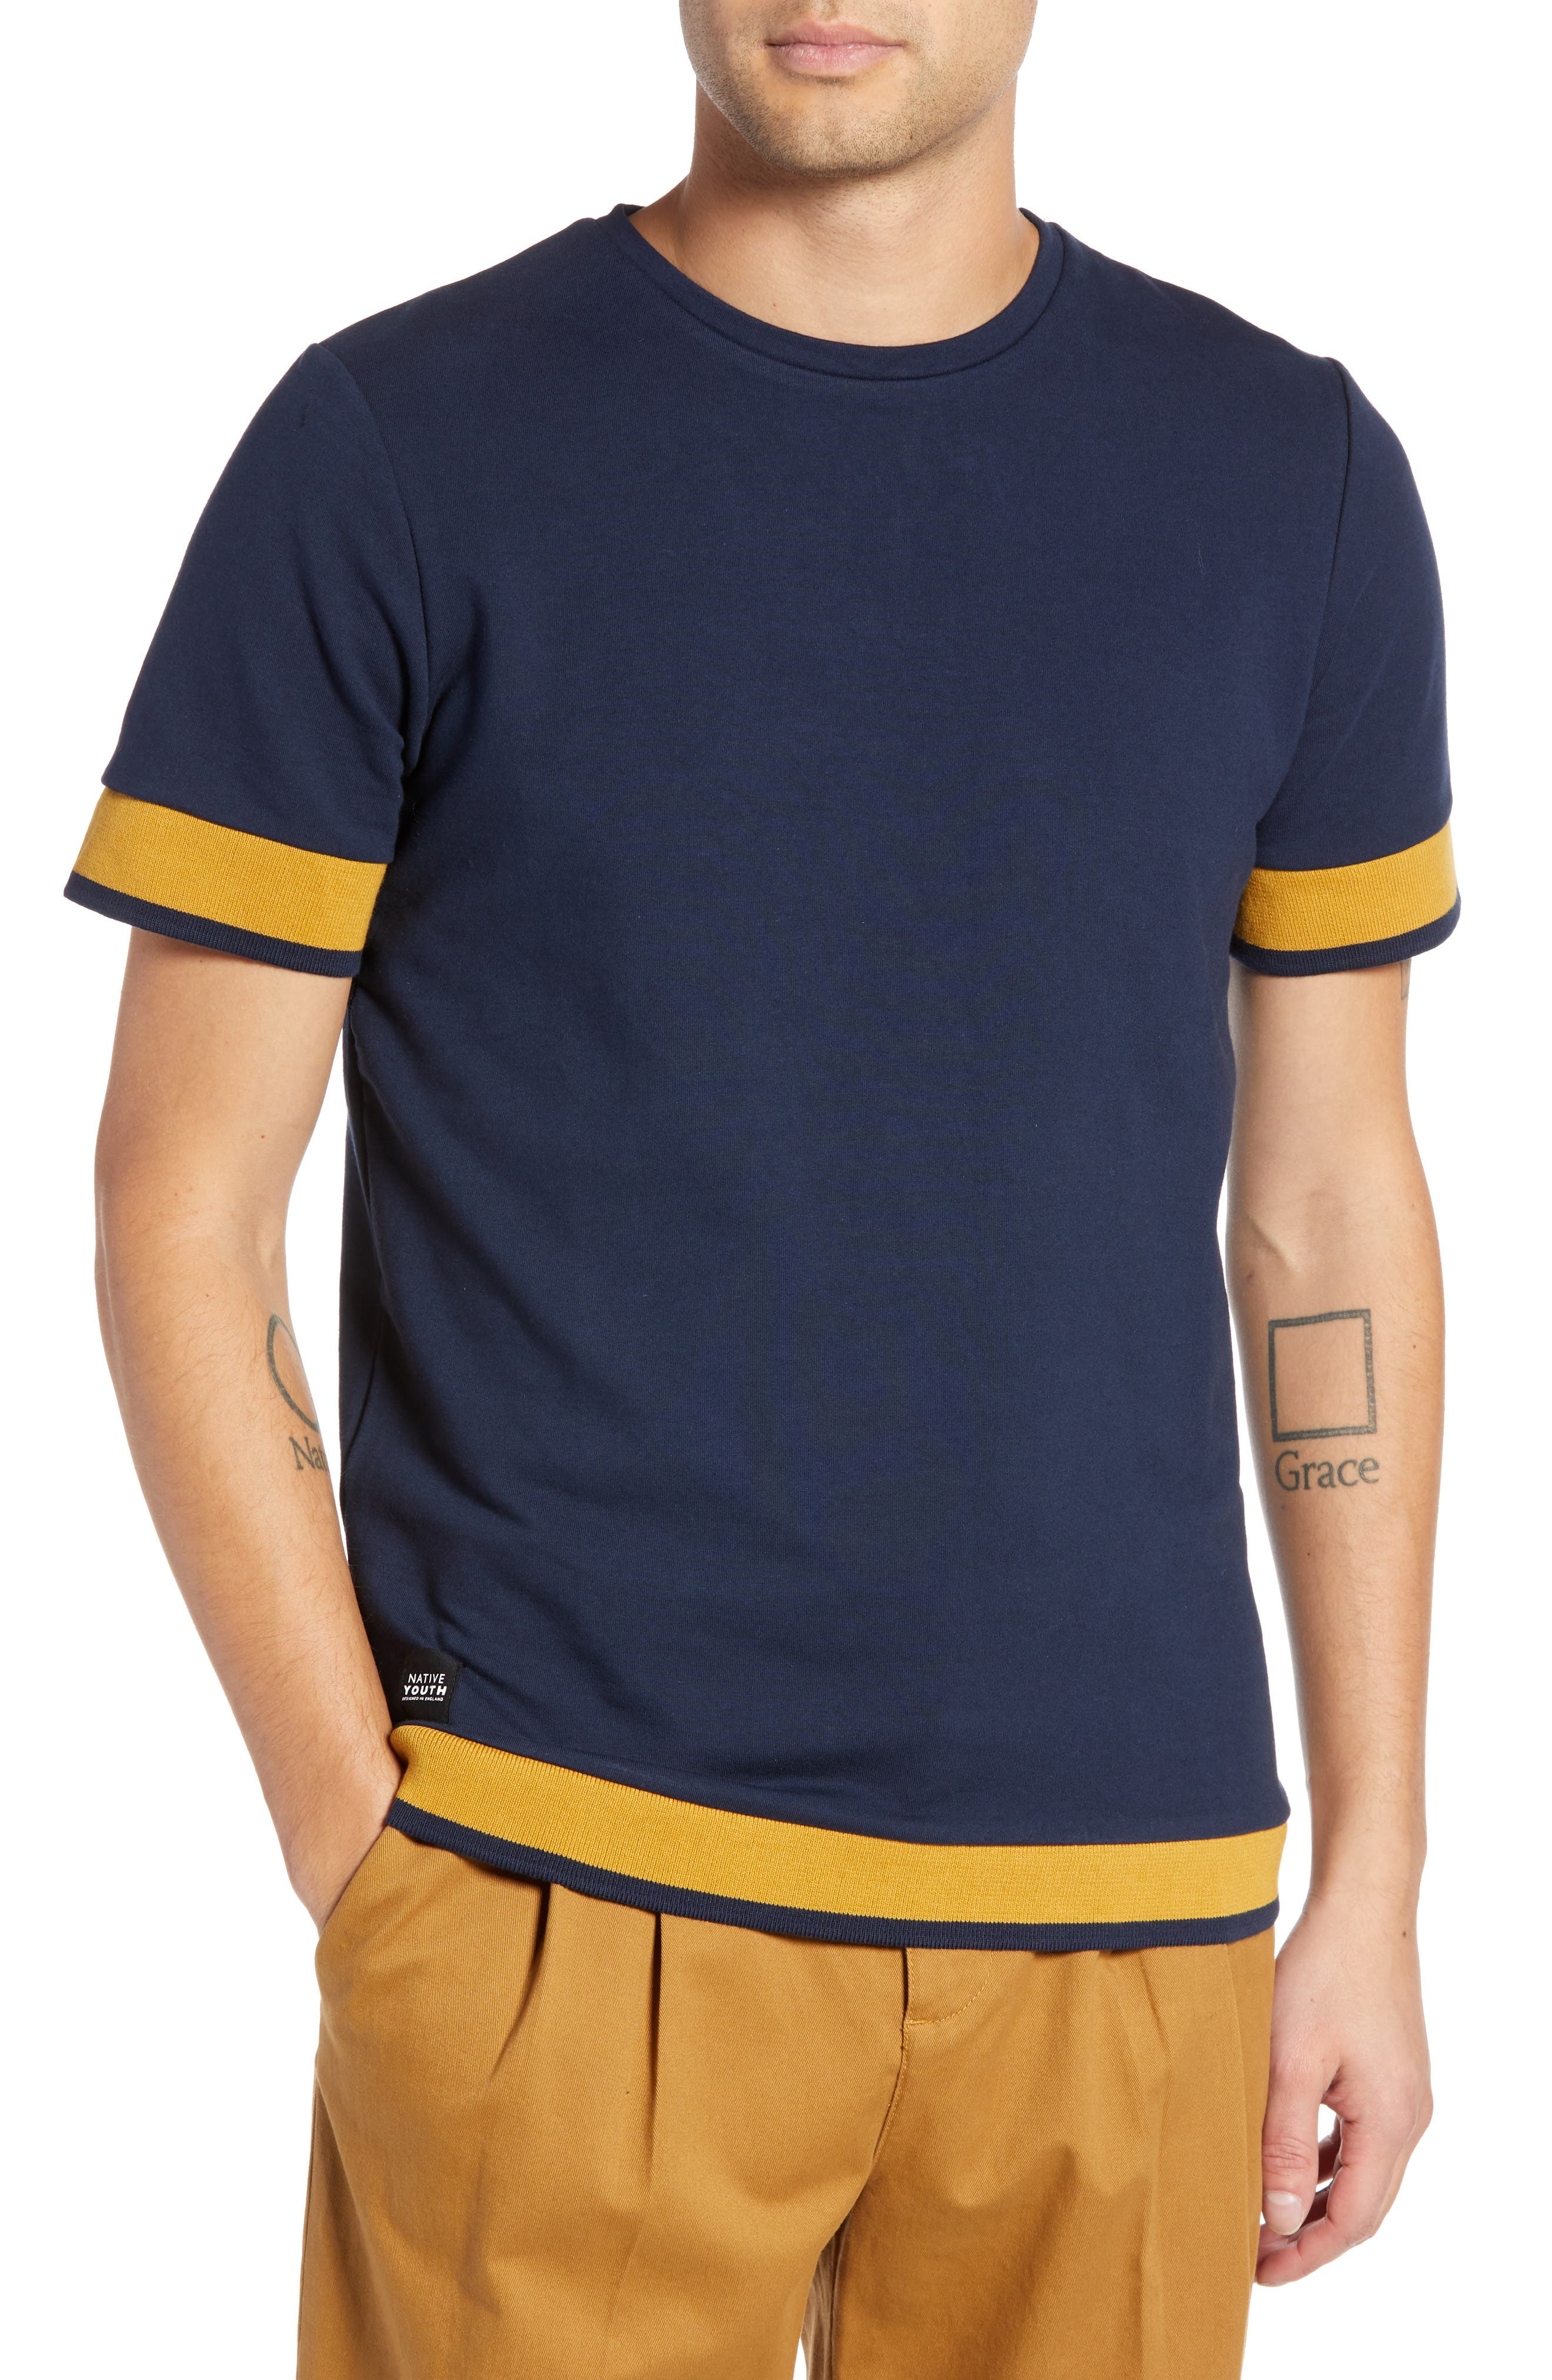 NATIVE YOUTH Tipped T-Shirt in Navy